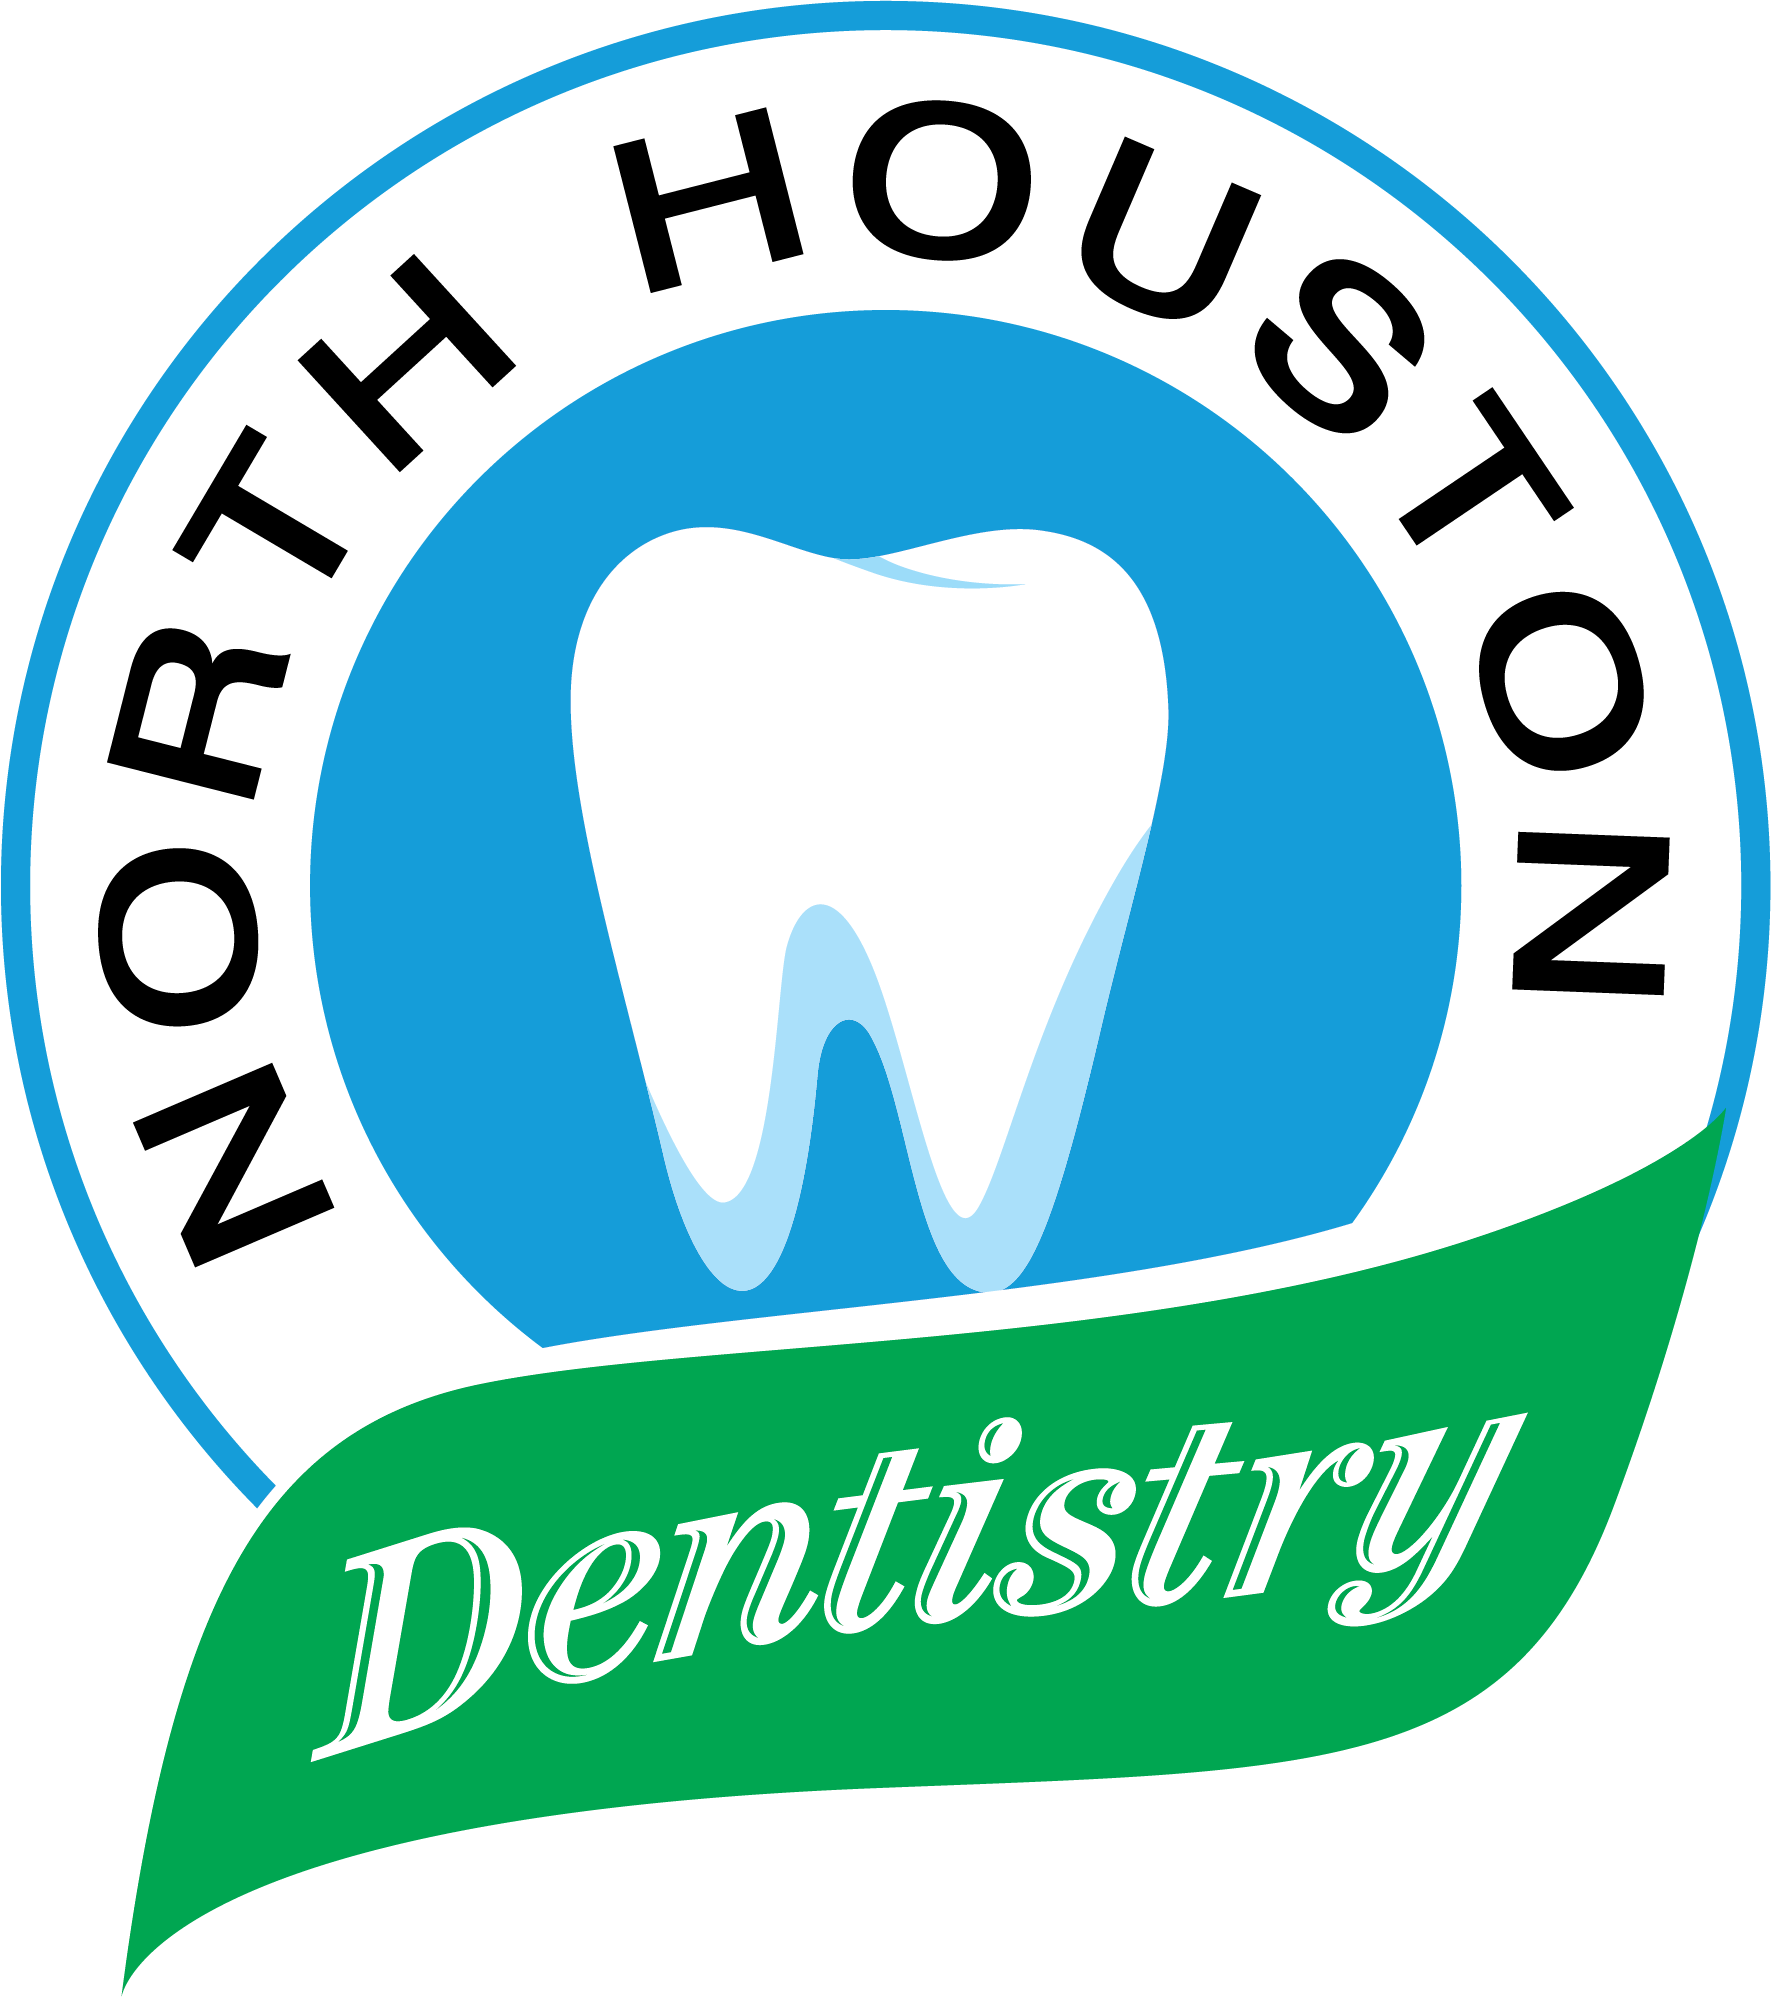 North Houston Dentistry | Cosmetic & General | 77090